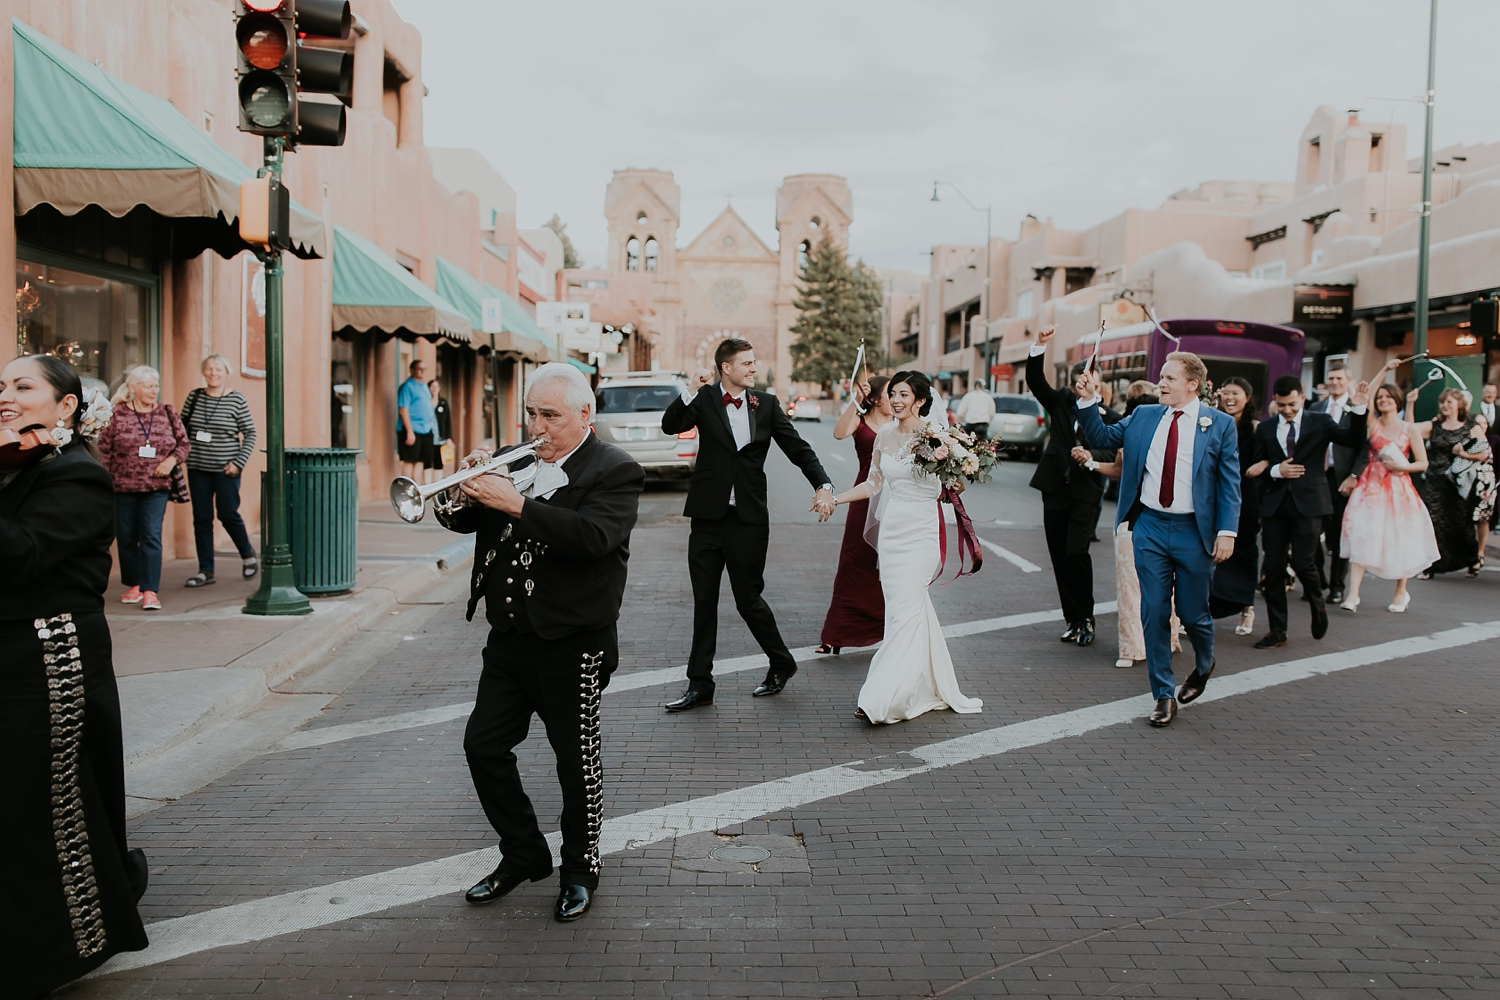 Alicia+lucia+photography+-+albuquerque+wedding+photographer+-+santa+fe+wedding+photography+-+new+mexico+wedding+photographer+-+la+fonda+santa+fe+wedding+-+santa+fe+fall+wedding+-+la+fonda+fall+wedding_0080.jpg